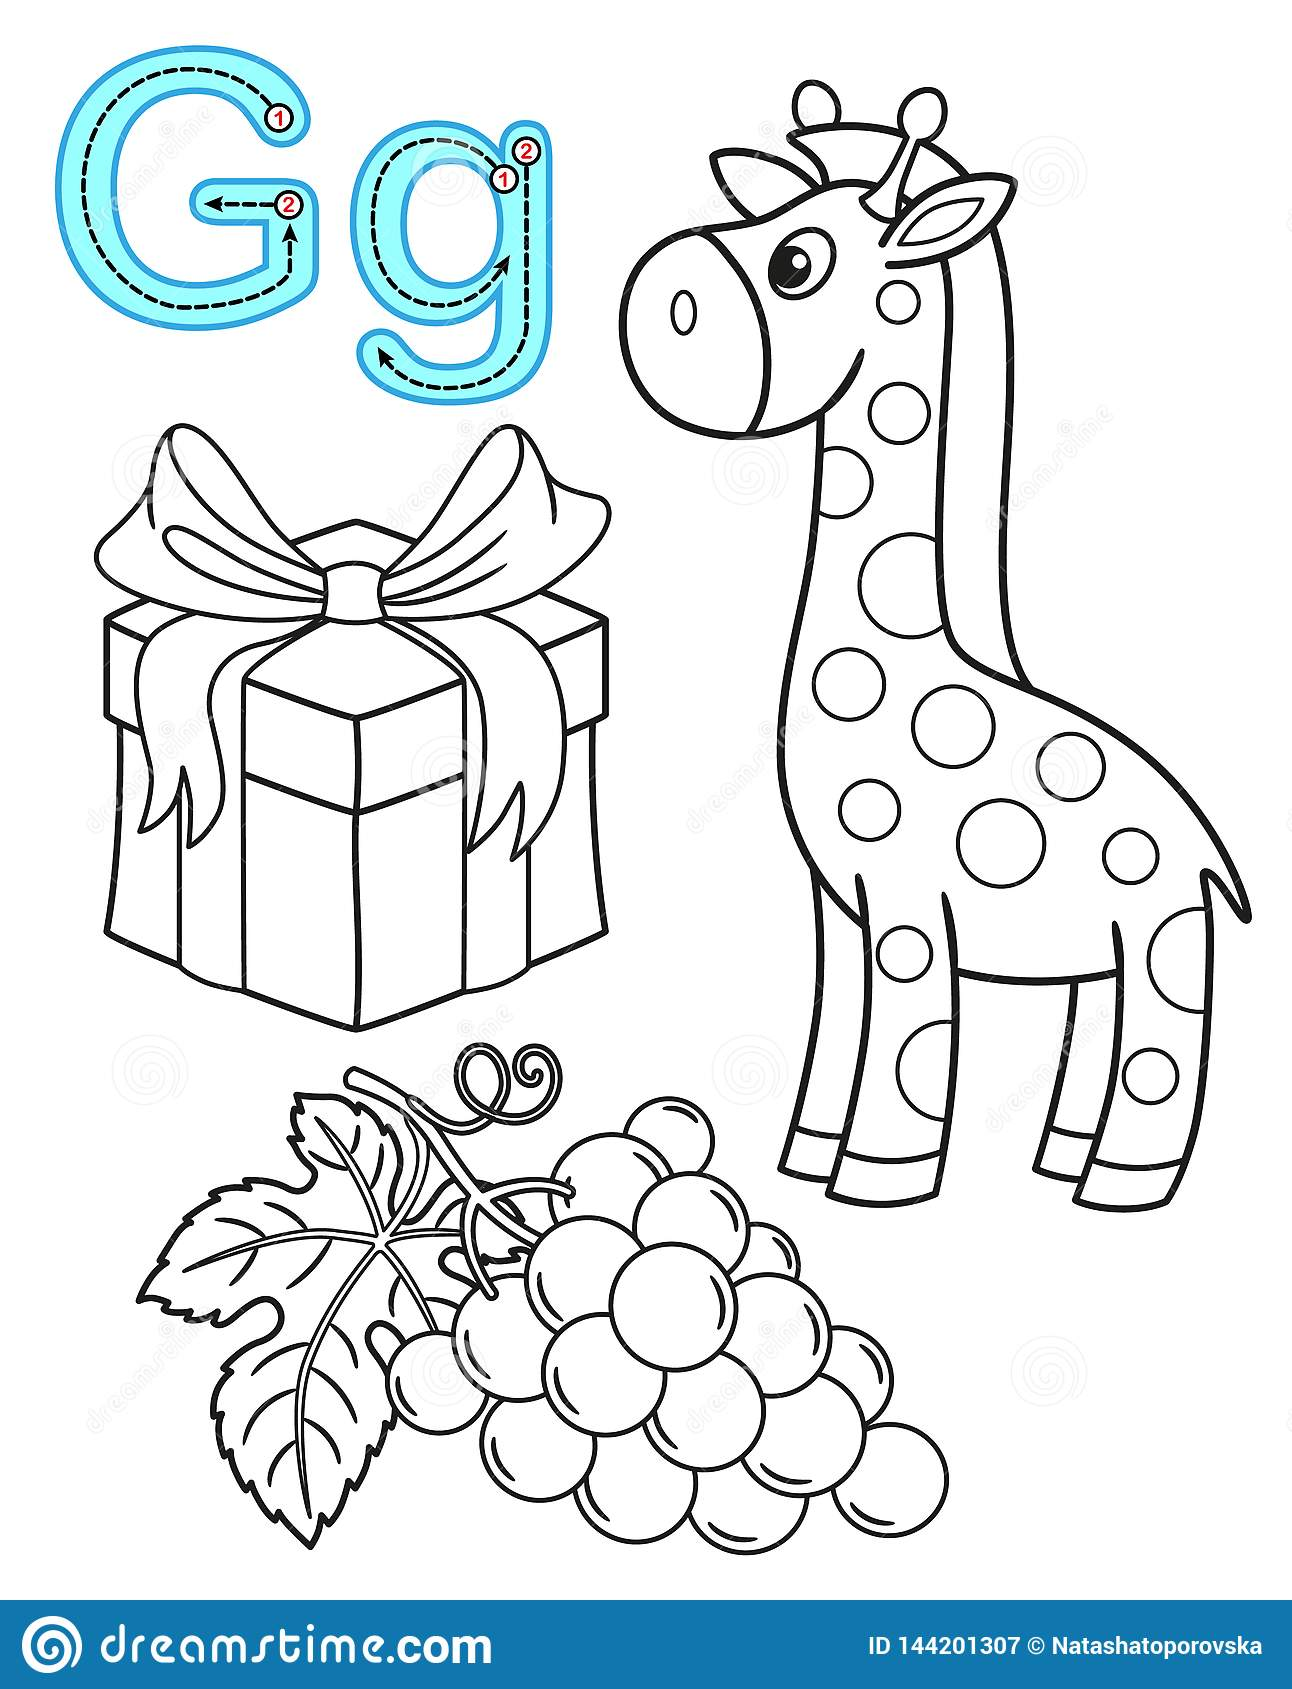 Printable Coloring Page For Kindergarten And Preschool